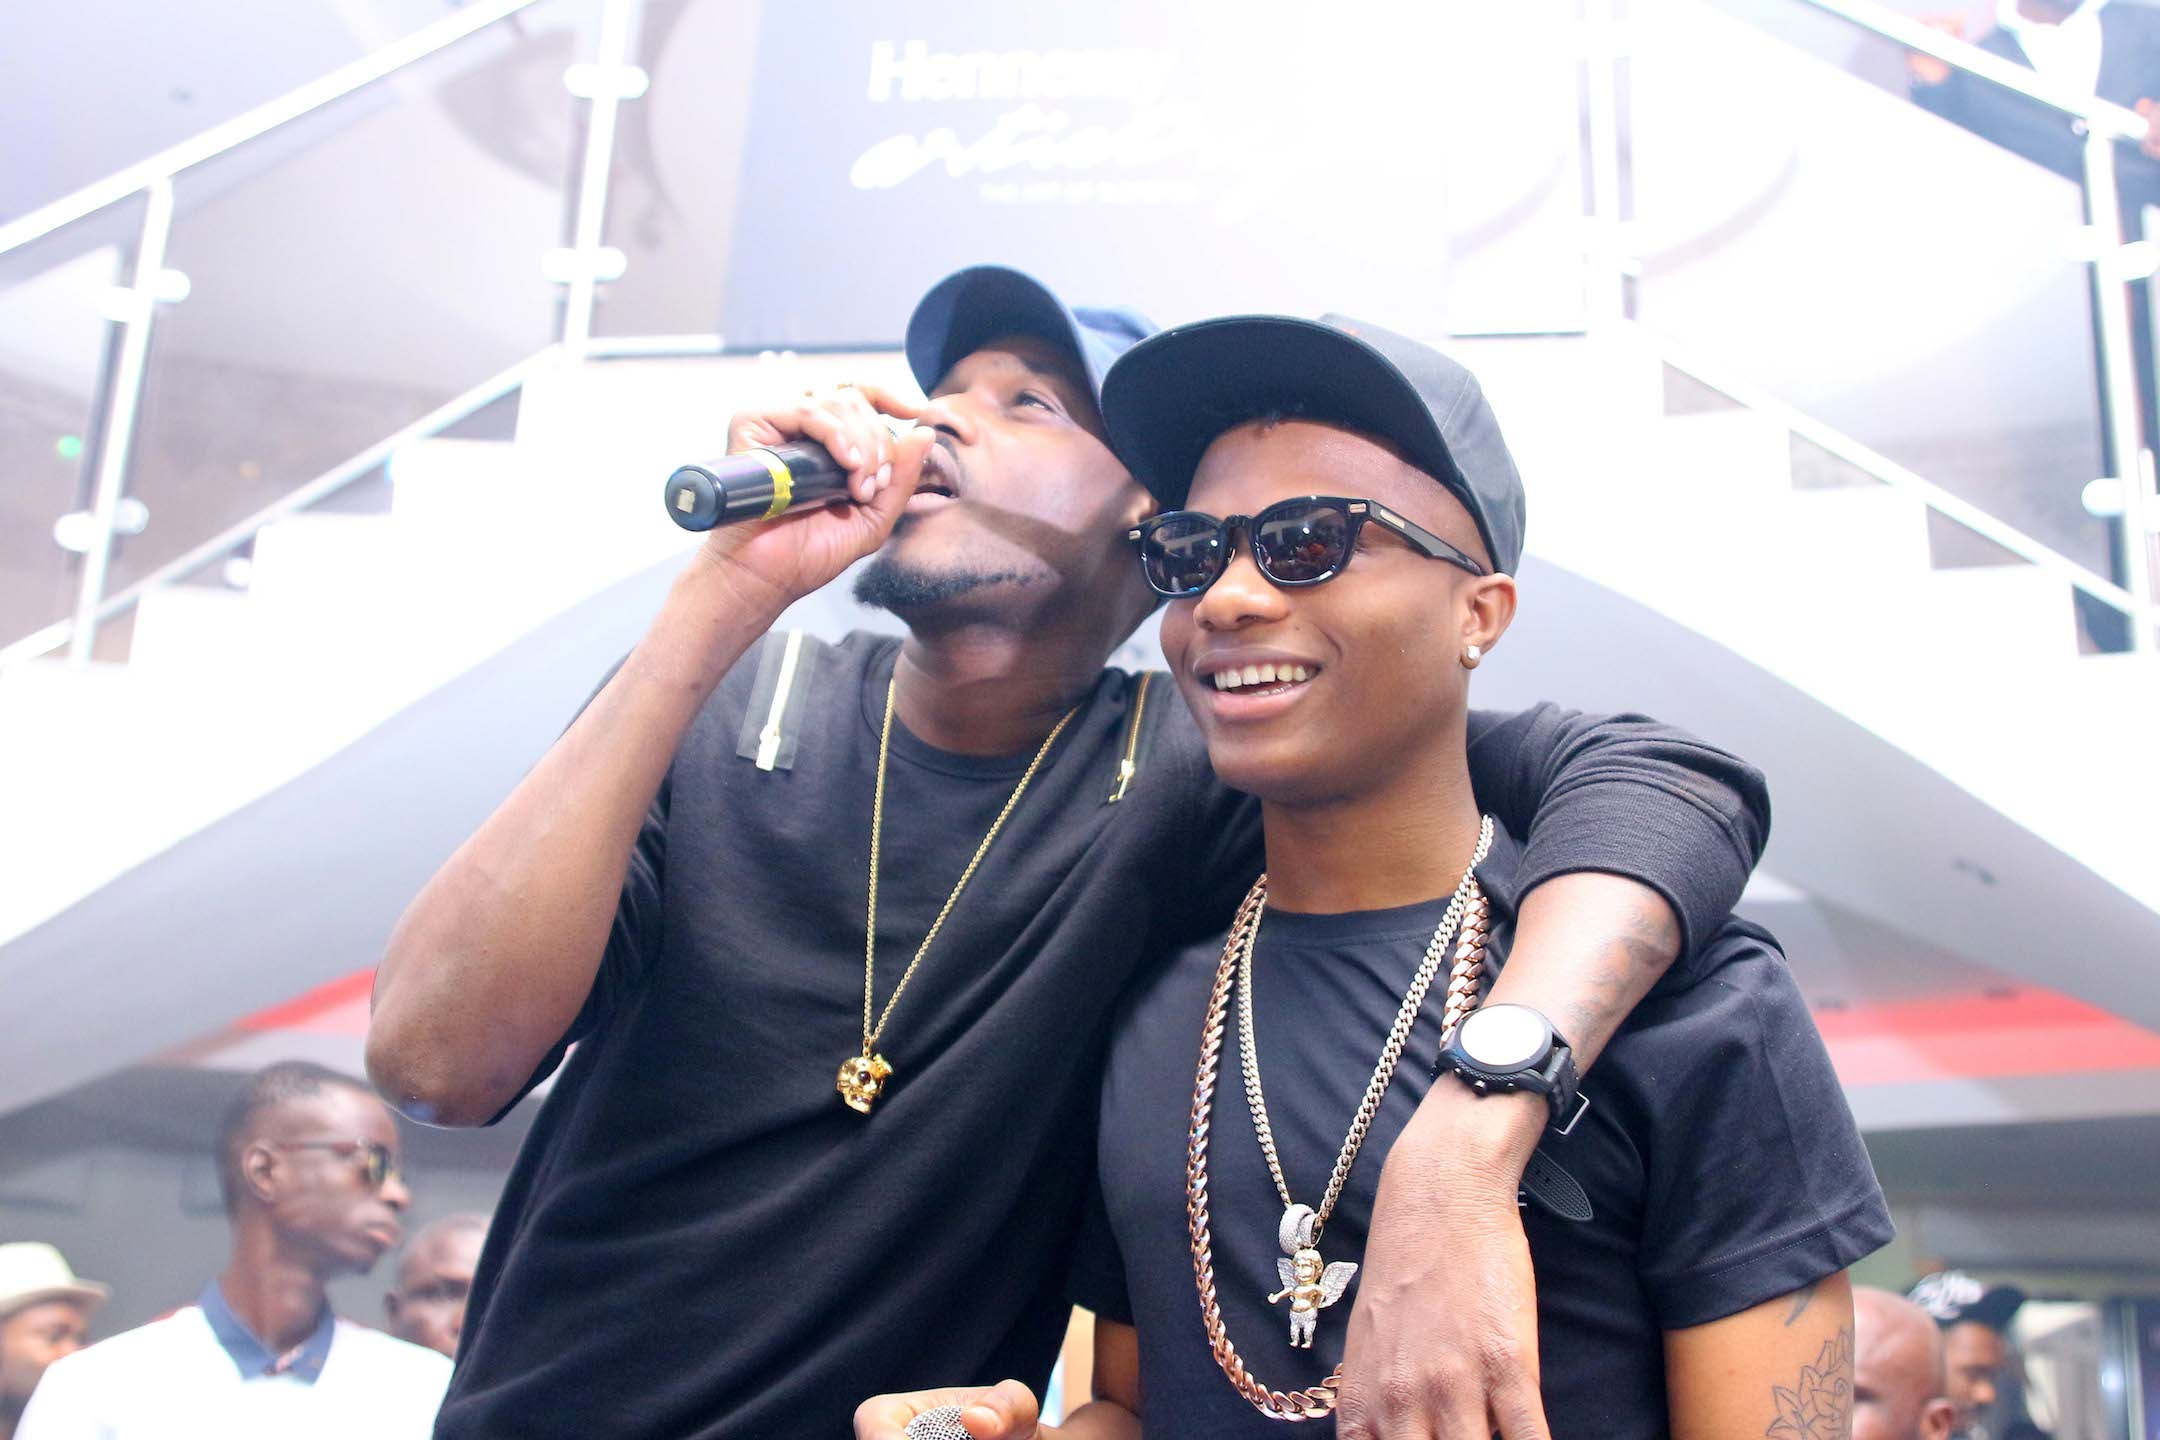 2FACE, WIZKID, TIMAYA, REMINISCE, ANNIE IDIBIA, OTHERS CLOSE HENNESSY ARTISTRY CLUB TOUR IN STYLE!